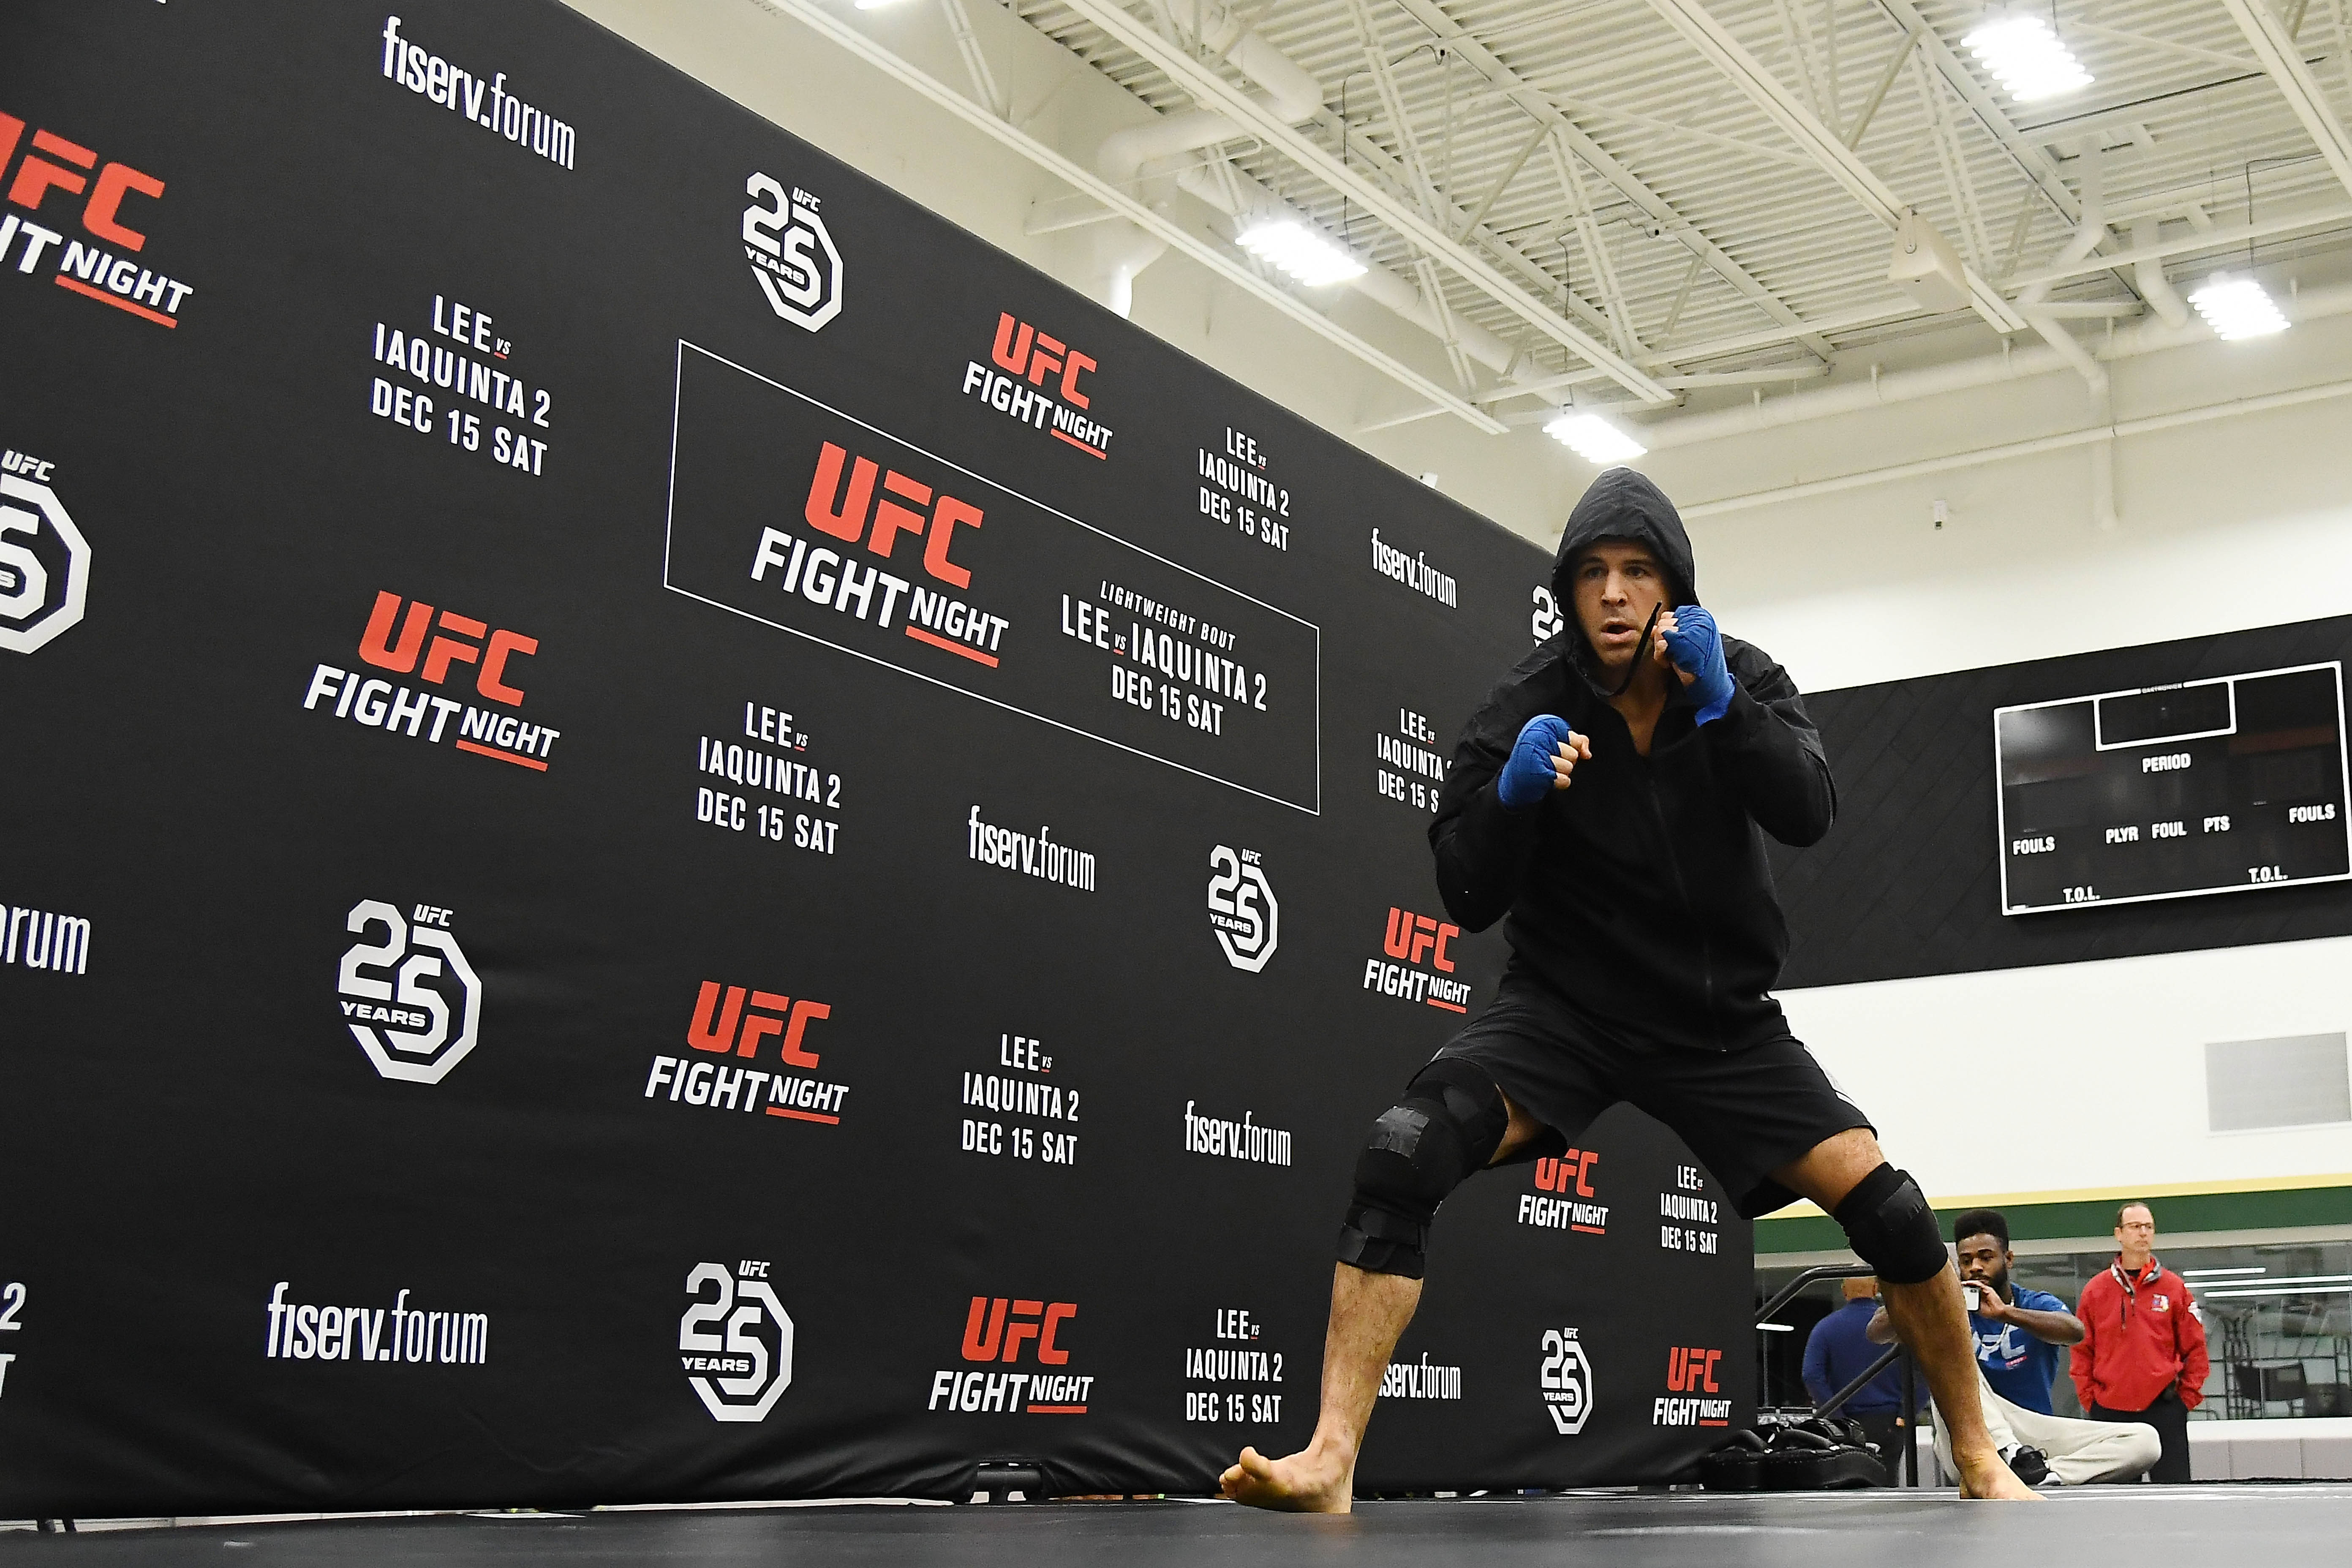 MILWAUKEE, WISCONSIN - DECEMBER 12: Al Iaquinta participates in open workouts on December 12, 2018 in Milwaukee, Wisconsin. (Photo by Stacy Revere/Zuffa LLC/Zuffa LLC)